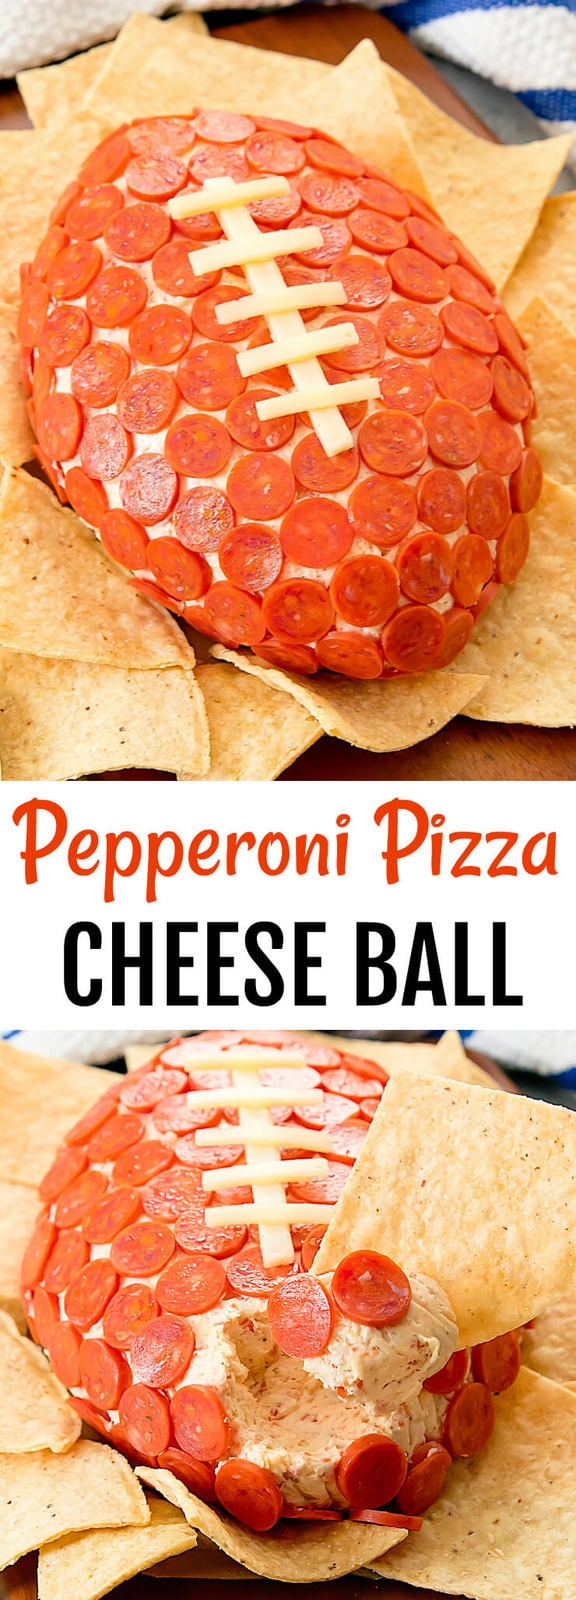 Pepperoni Pizza Cheese Ball. Super fun and easy. Perfect for game day, tailgate party or Super Bowl.